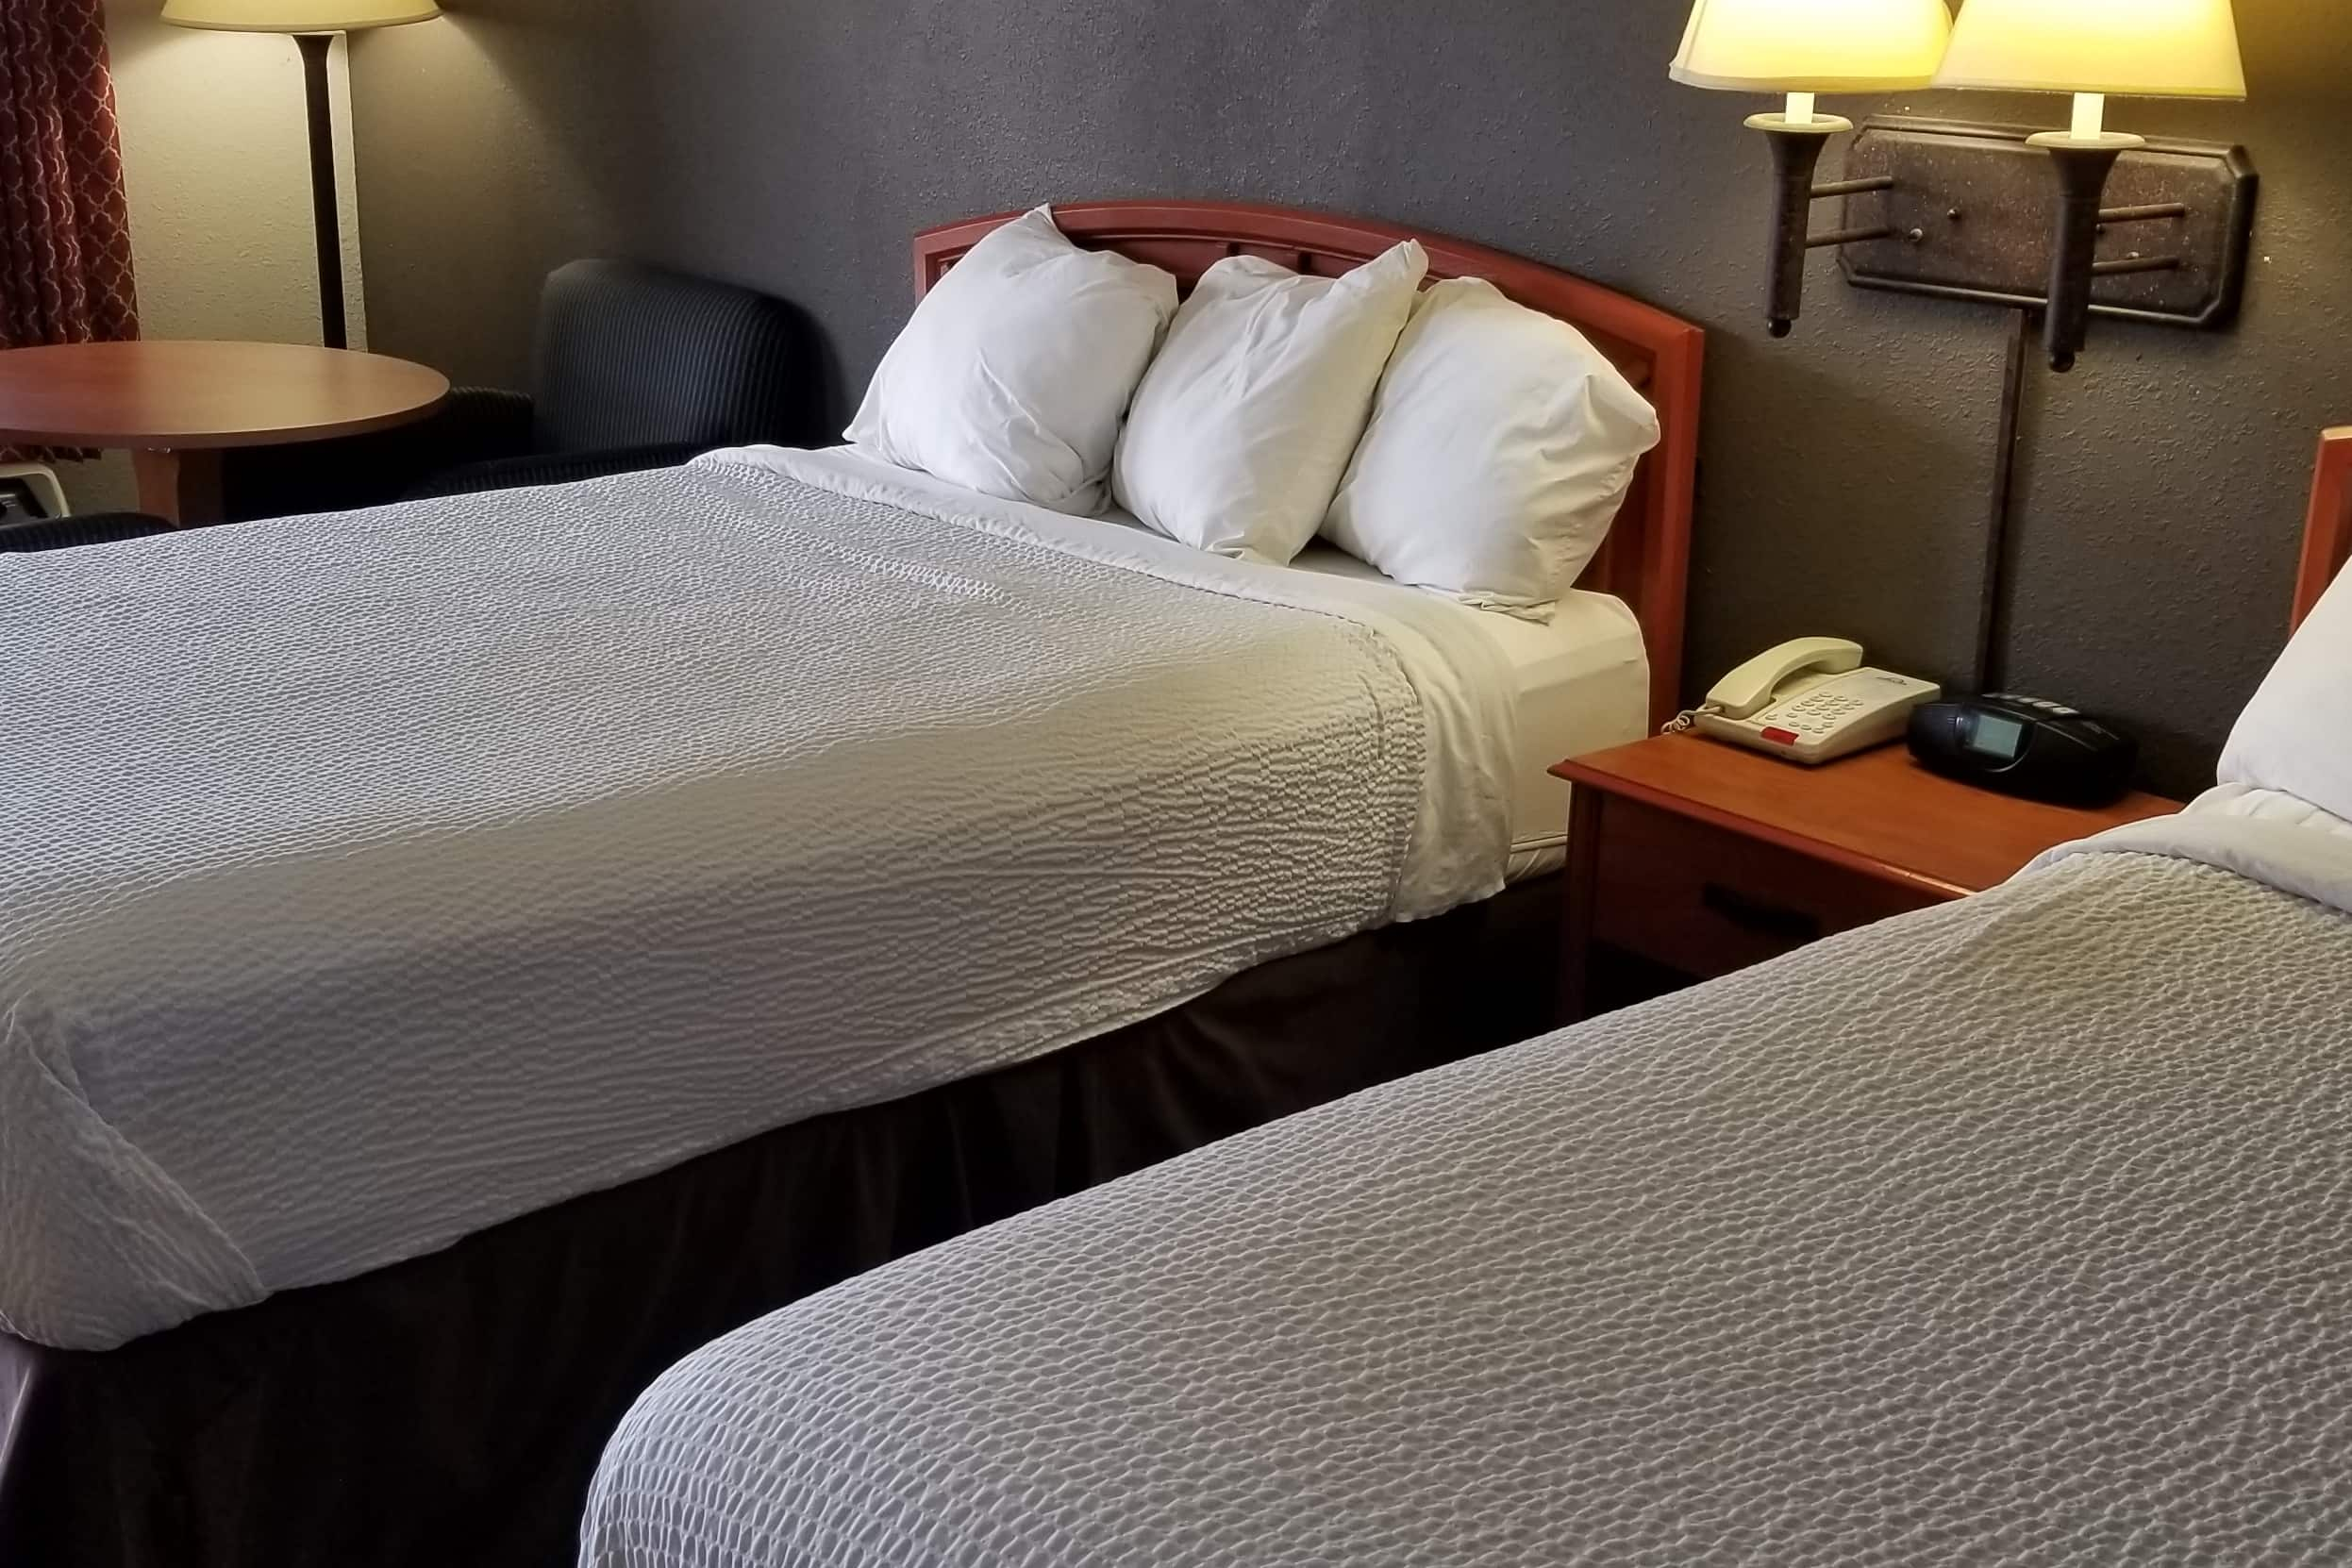 Guest room at the Days Inn Wilson in Wilson, North Carolina